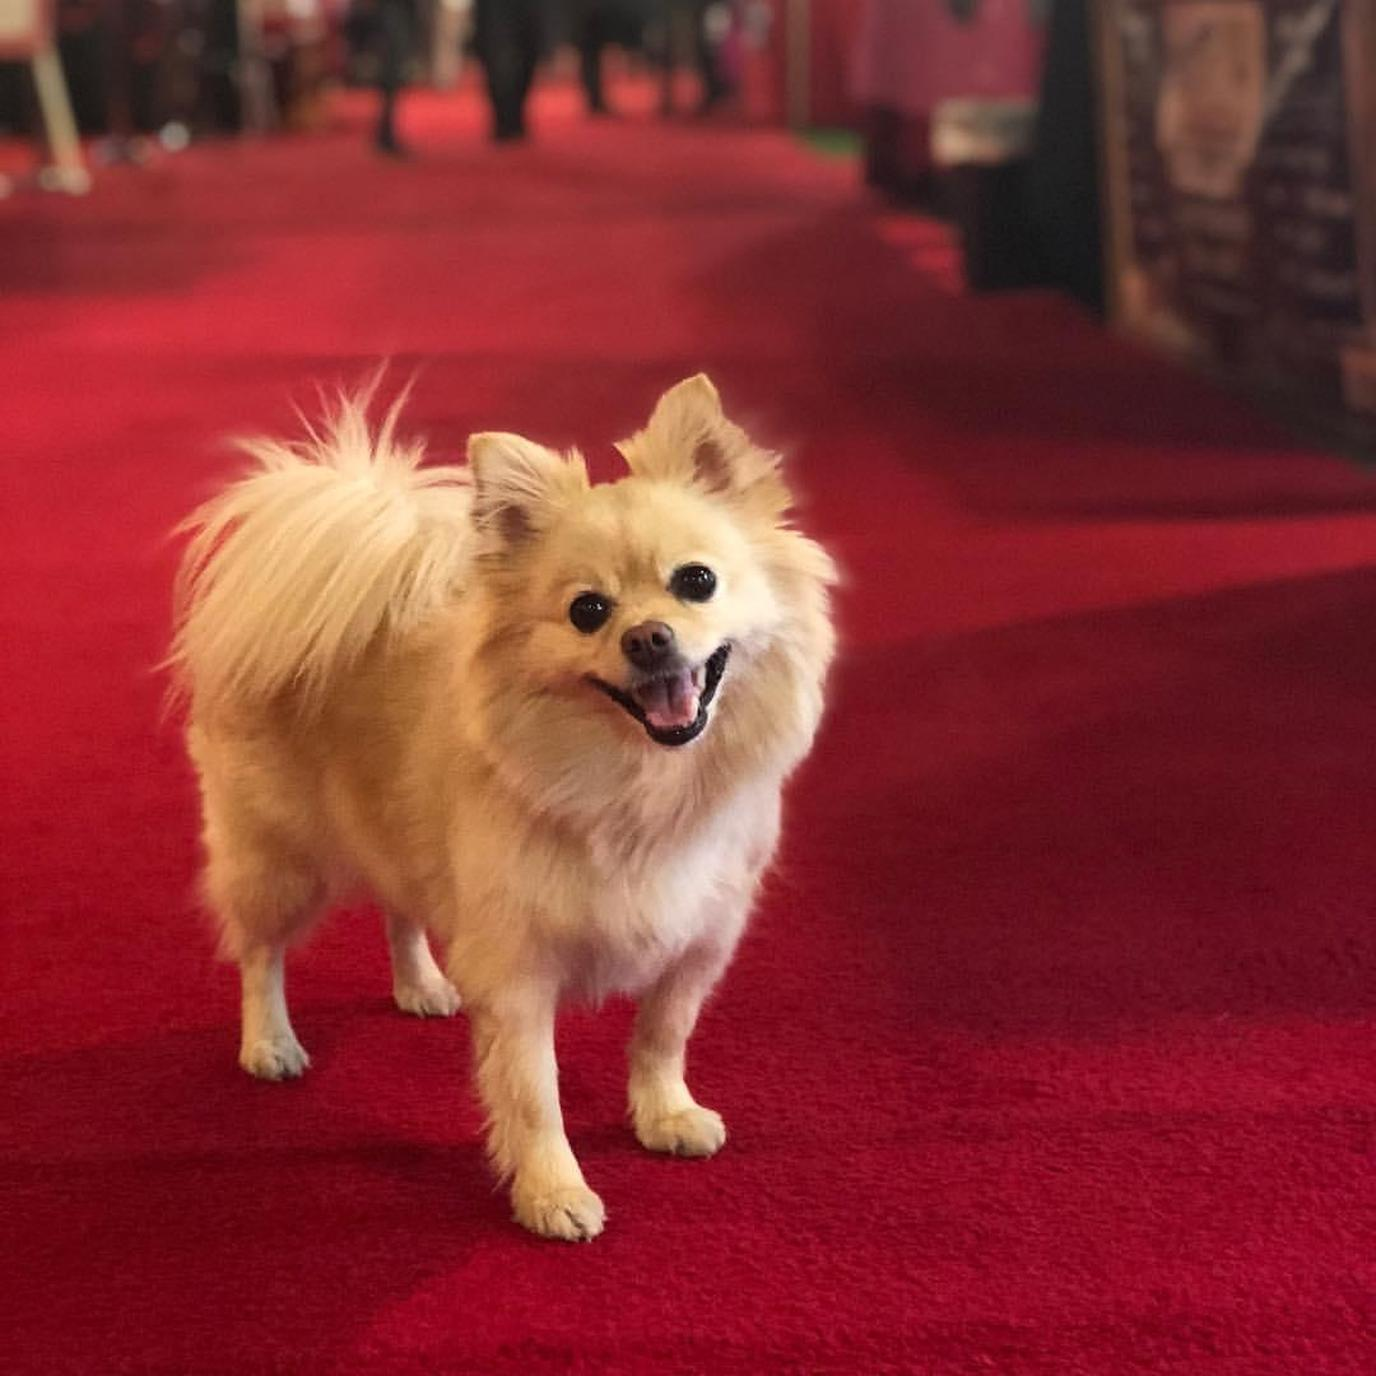 A Pomeranian Stands on a Red Carpet at a Pet-Friendly Event in Wisconsin.